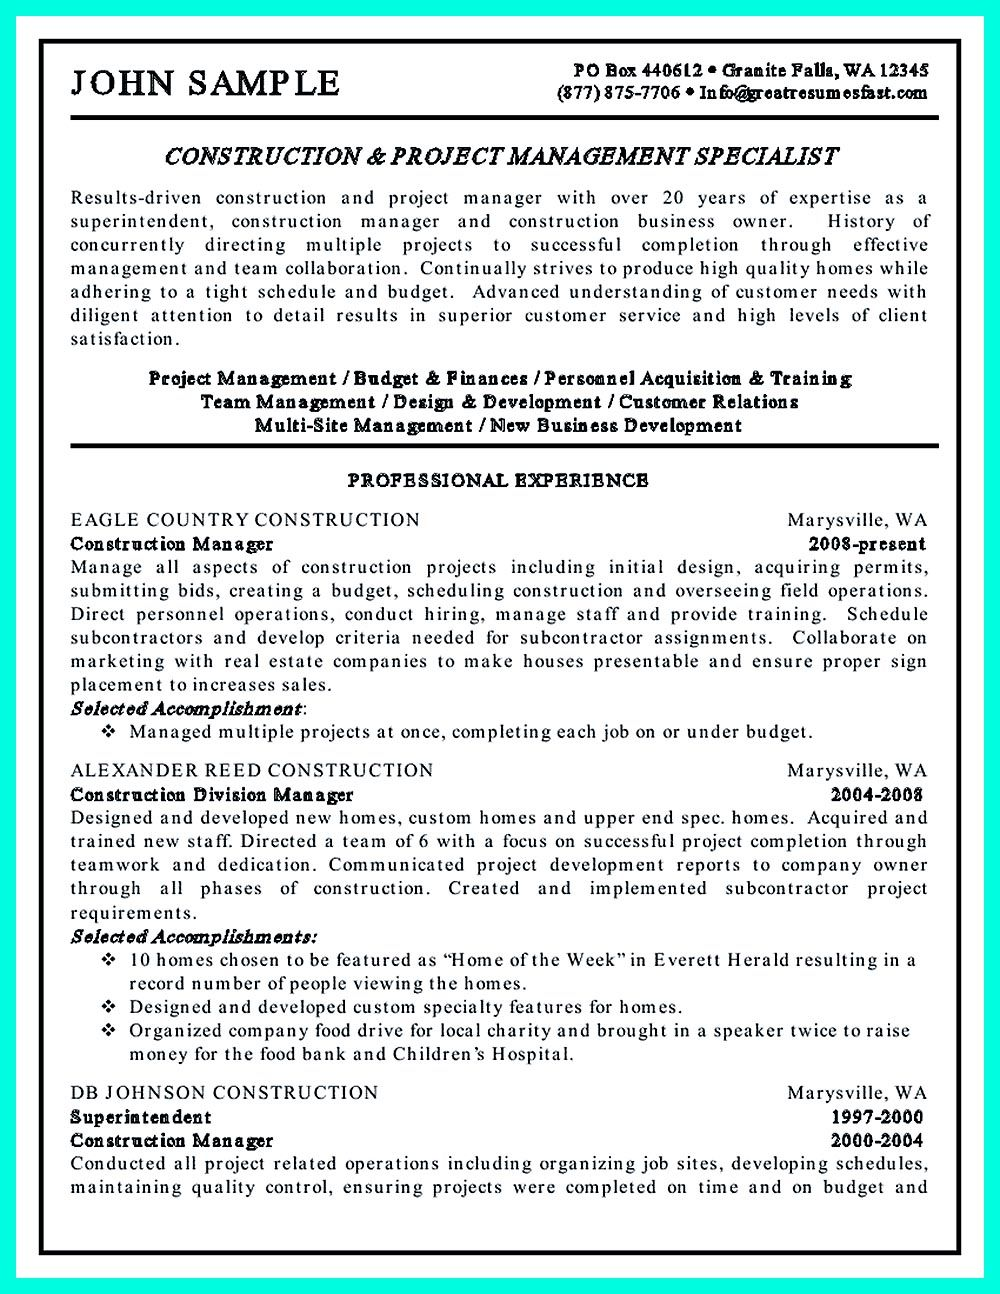 Construction Project Manager Resume For Experienced One Must Be Made With  Professional Profile, Education, · Job DescriptionResume ...